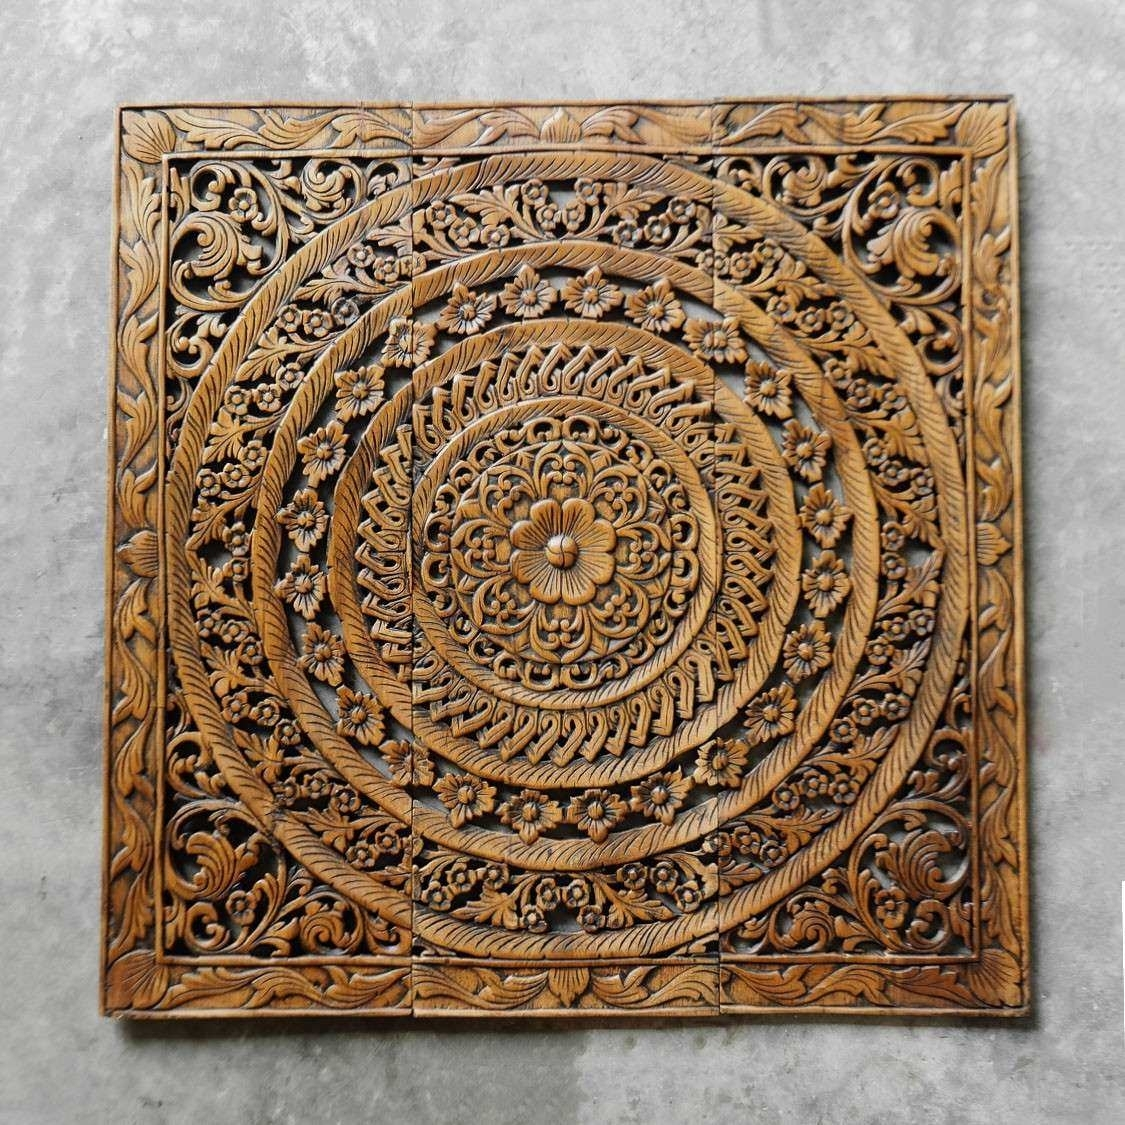 Wood Carvings Wall Decor Best Of Moroccan Wall Art | Wall Art Ideas intended for Moroccan Wall Art (Image 20 of 20)